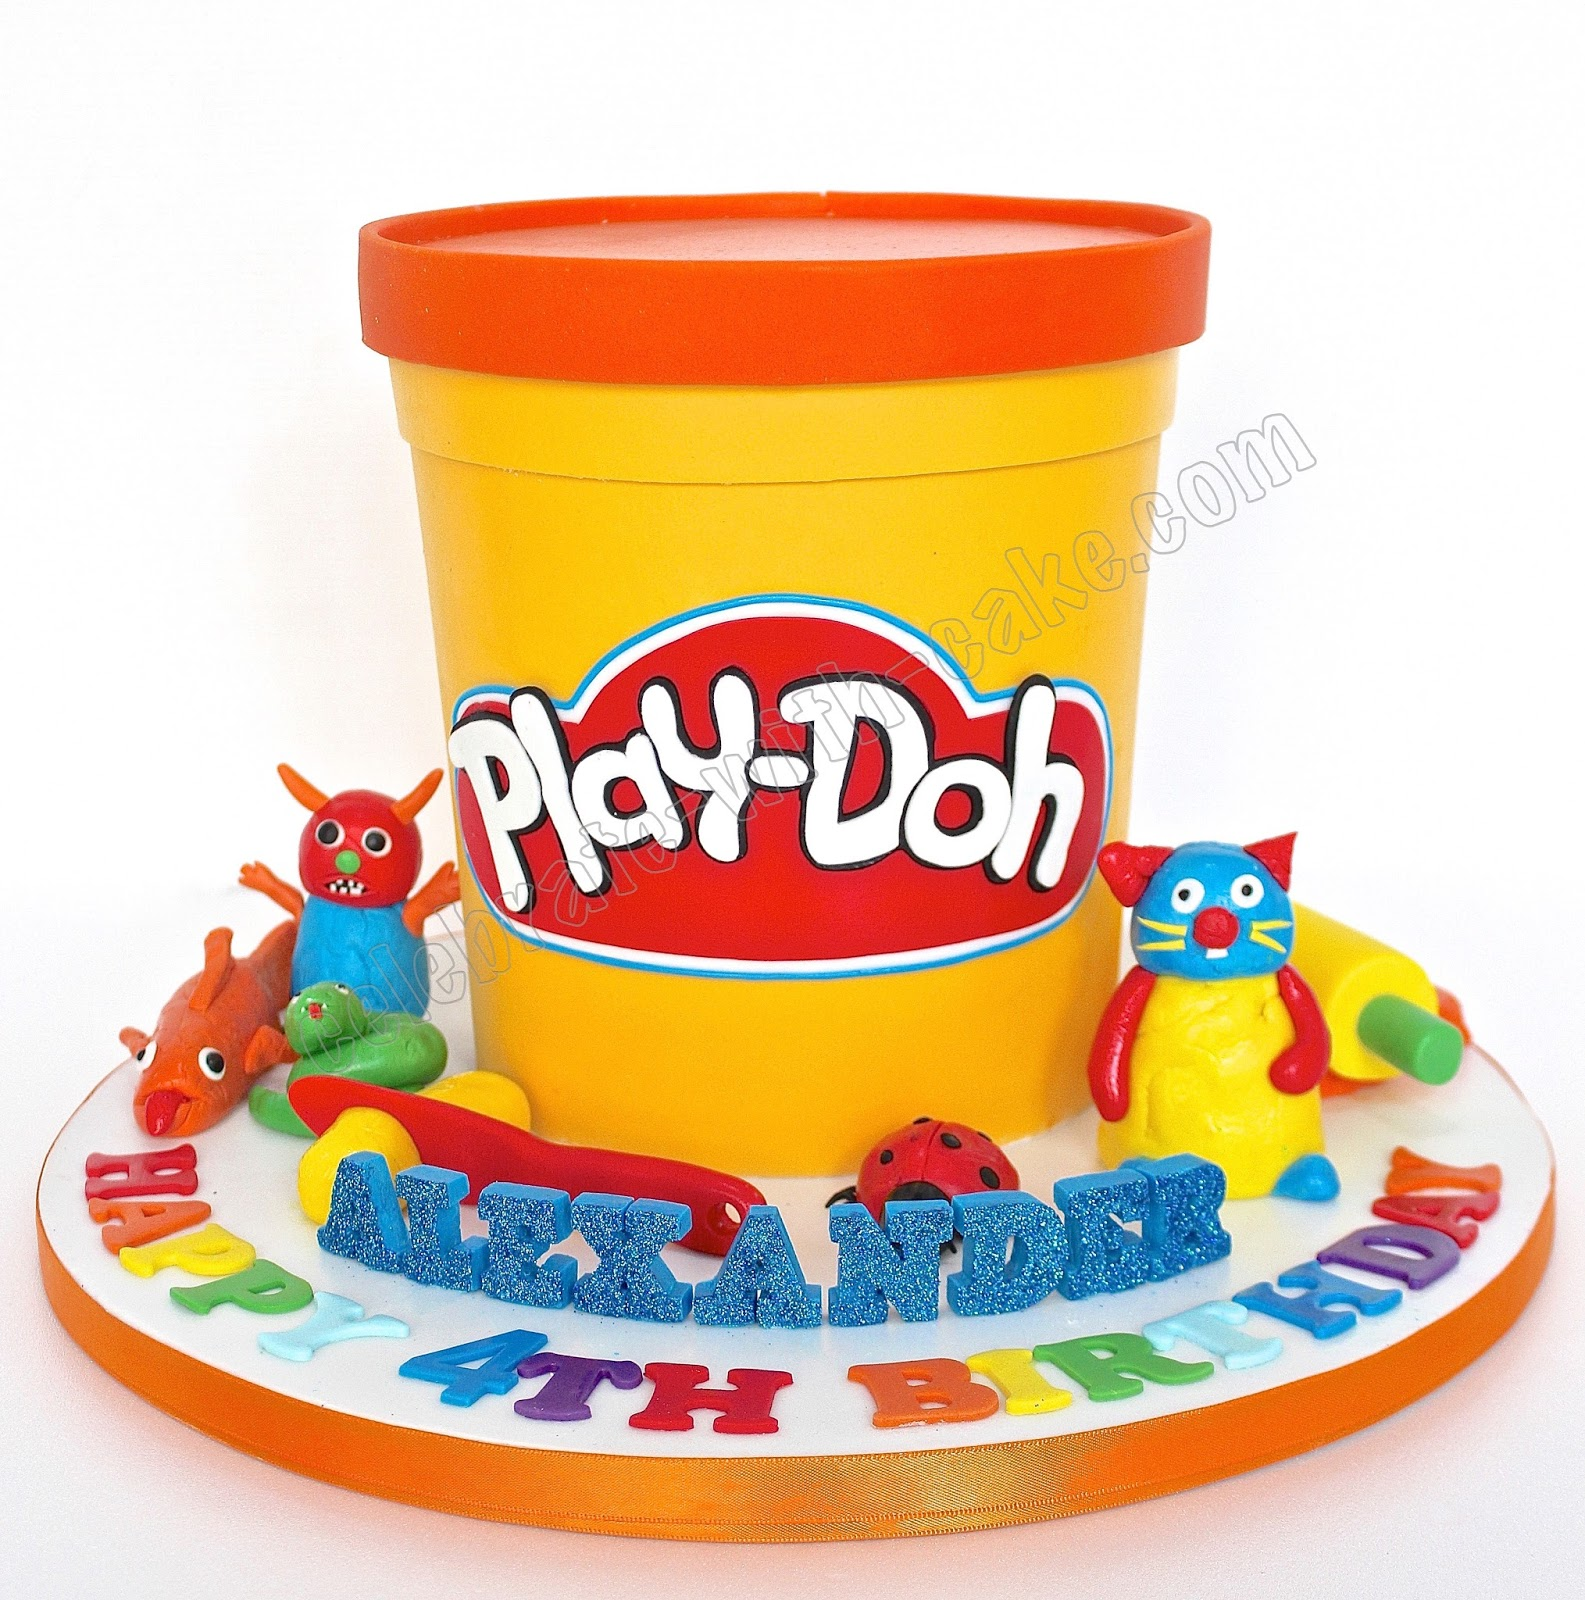 Celebrate with cake playdoh for Anpanman cake decoration